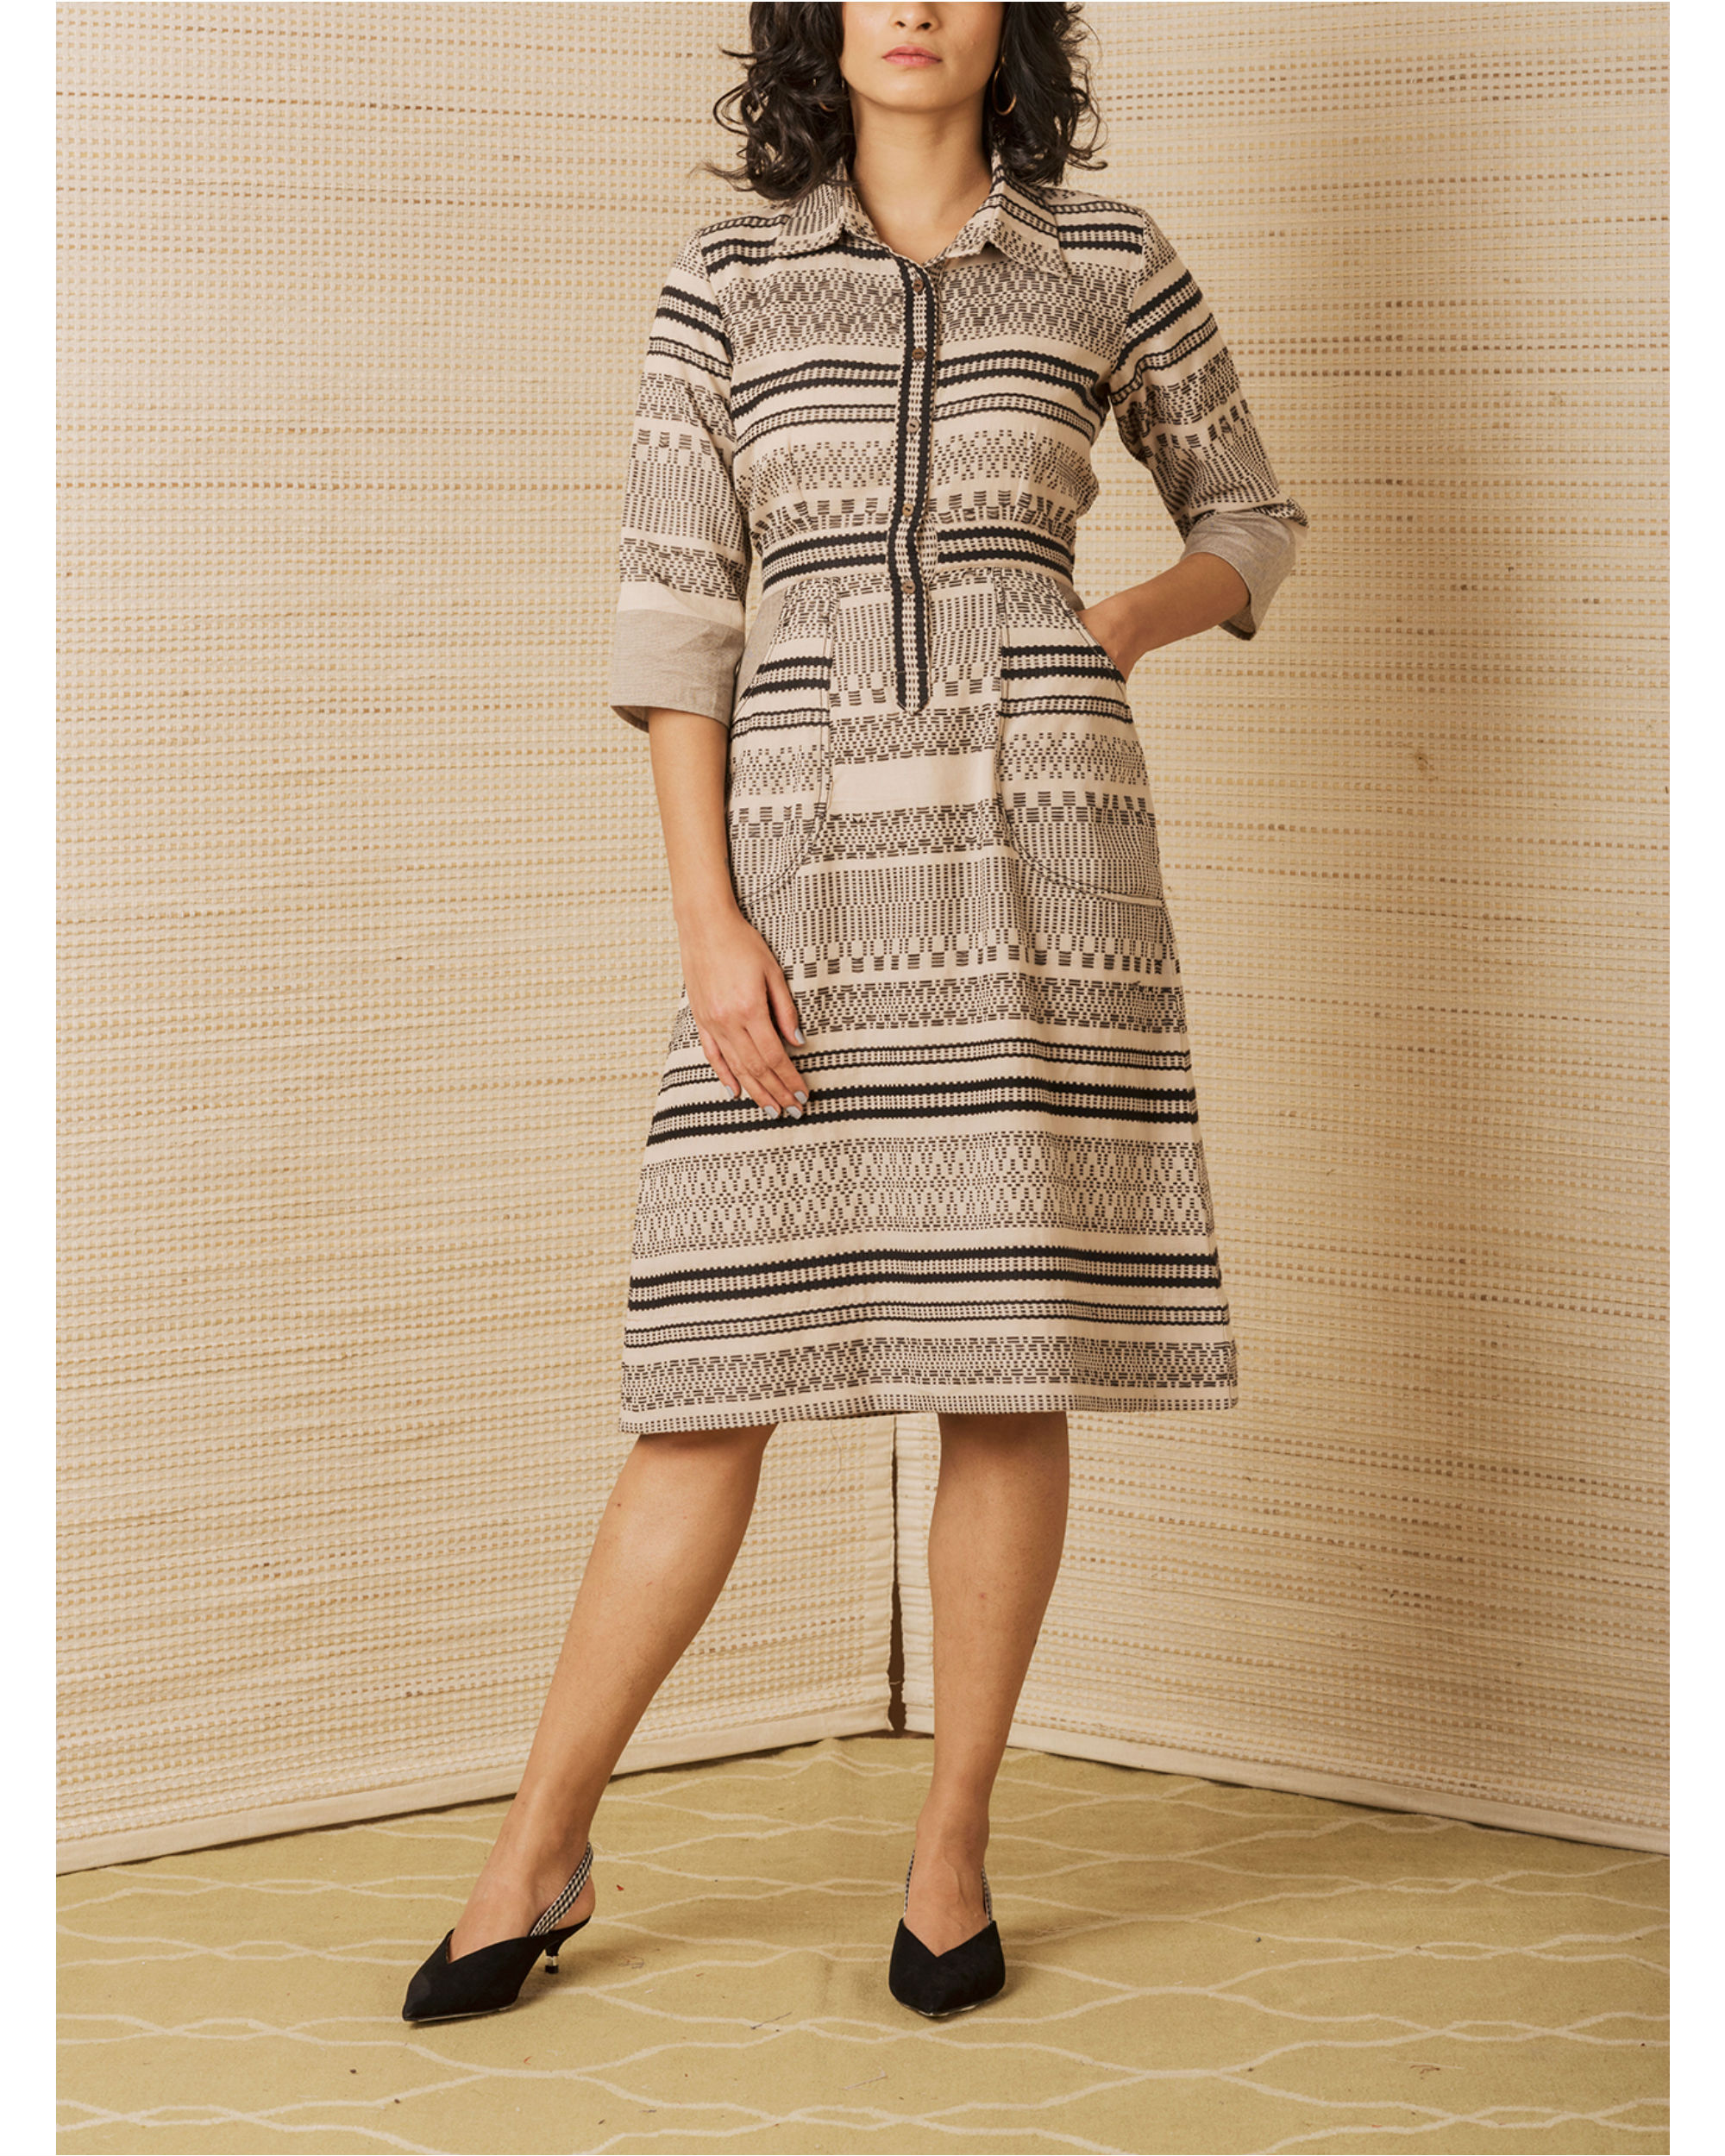 Luxe woven shirt dress